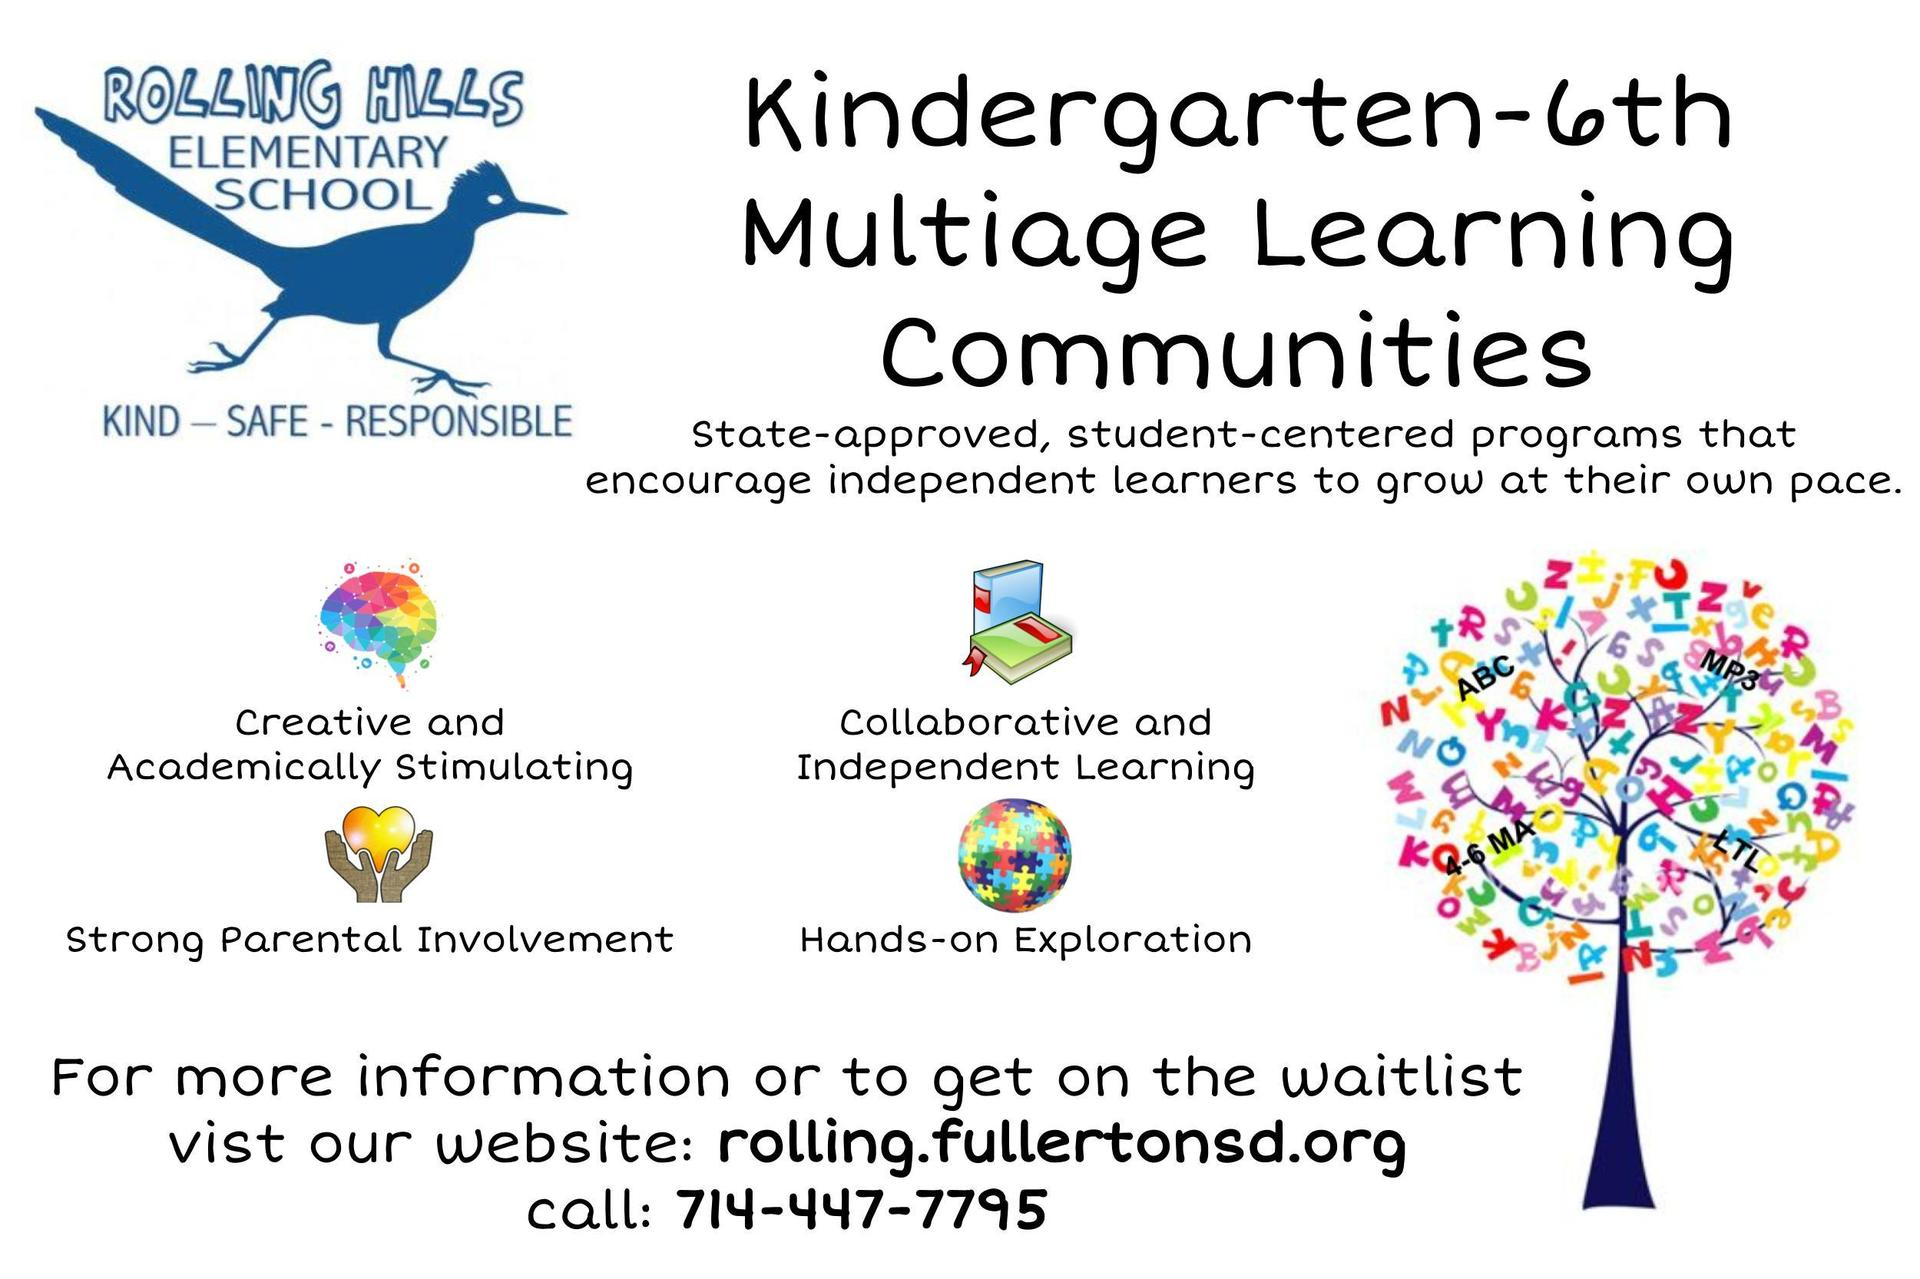 Multiage Community Information